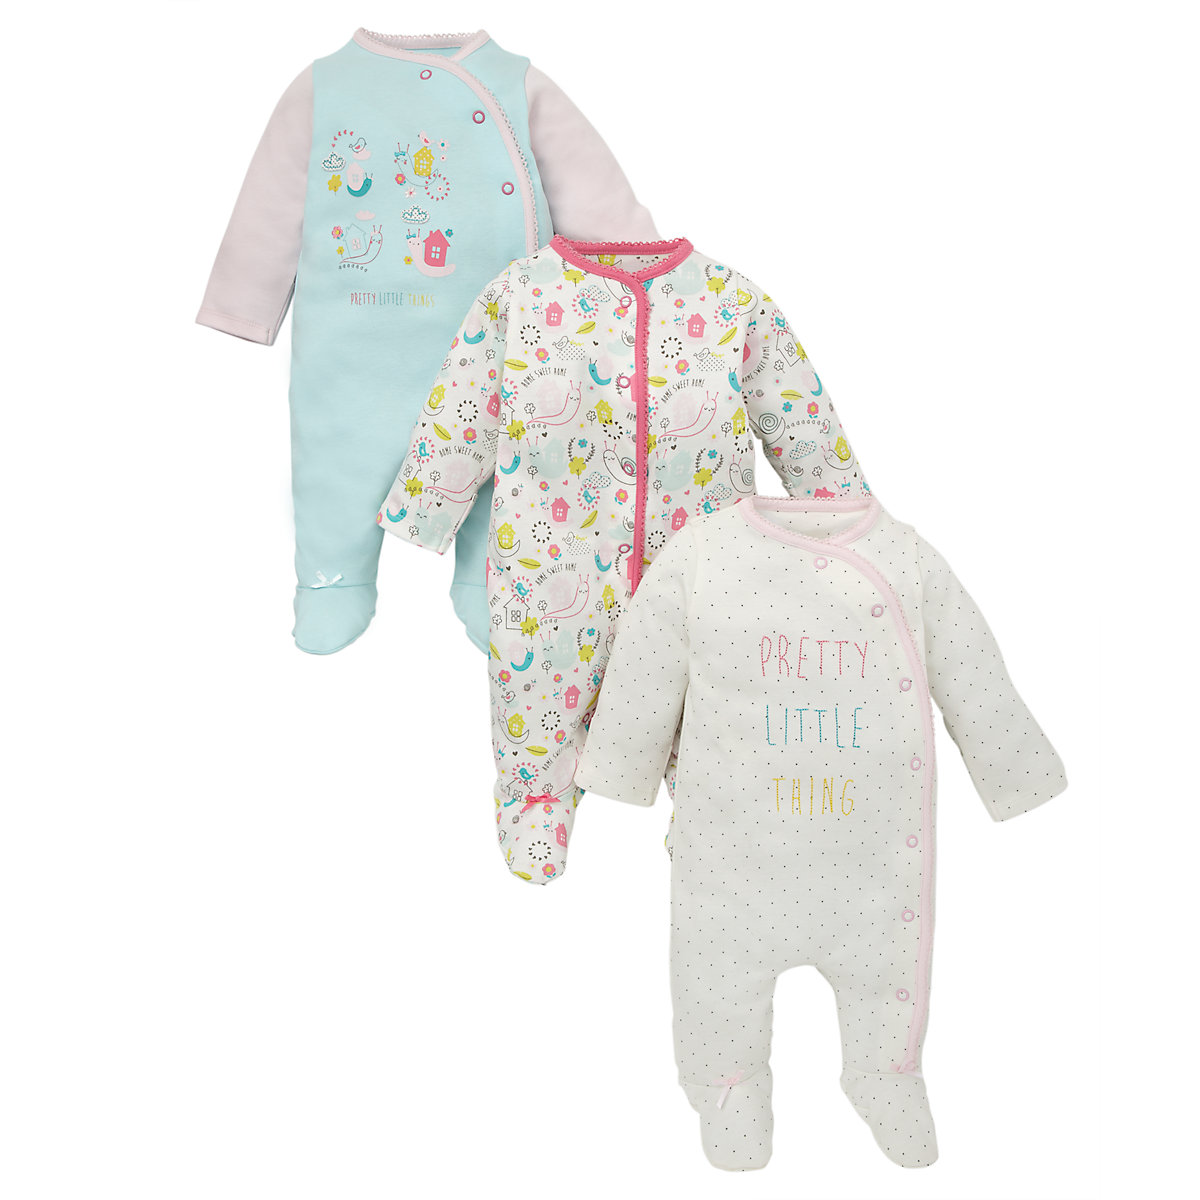 Snail Sleepsuits - 3 Pack